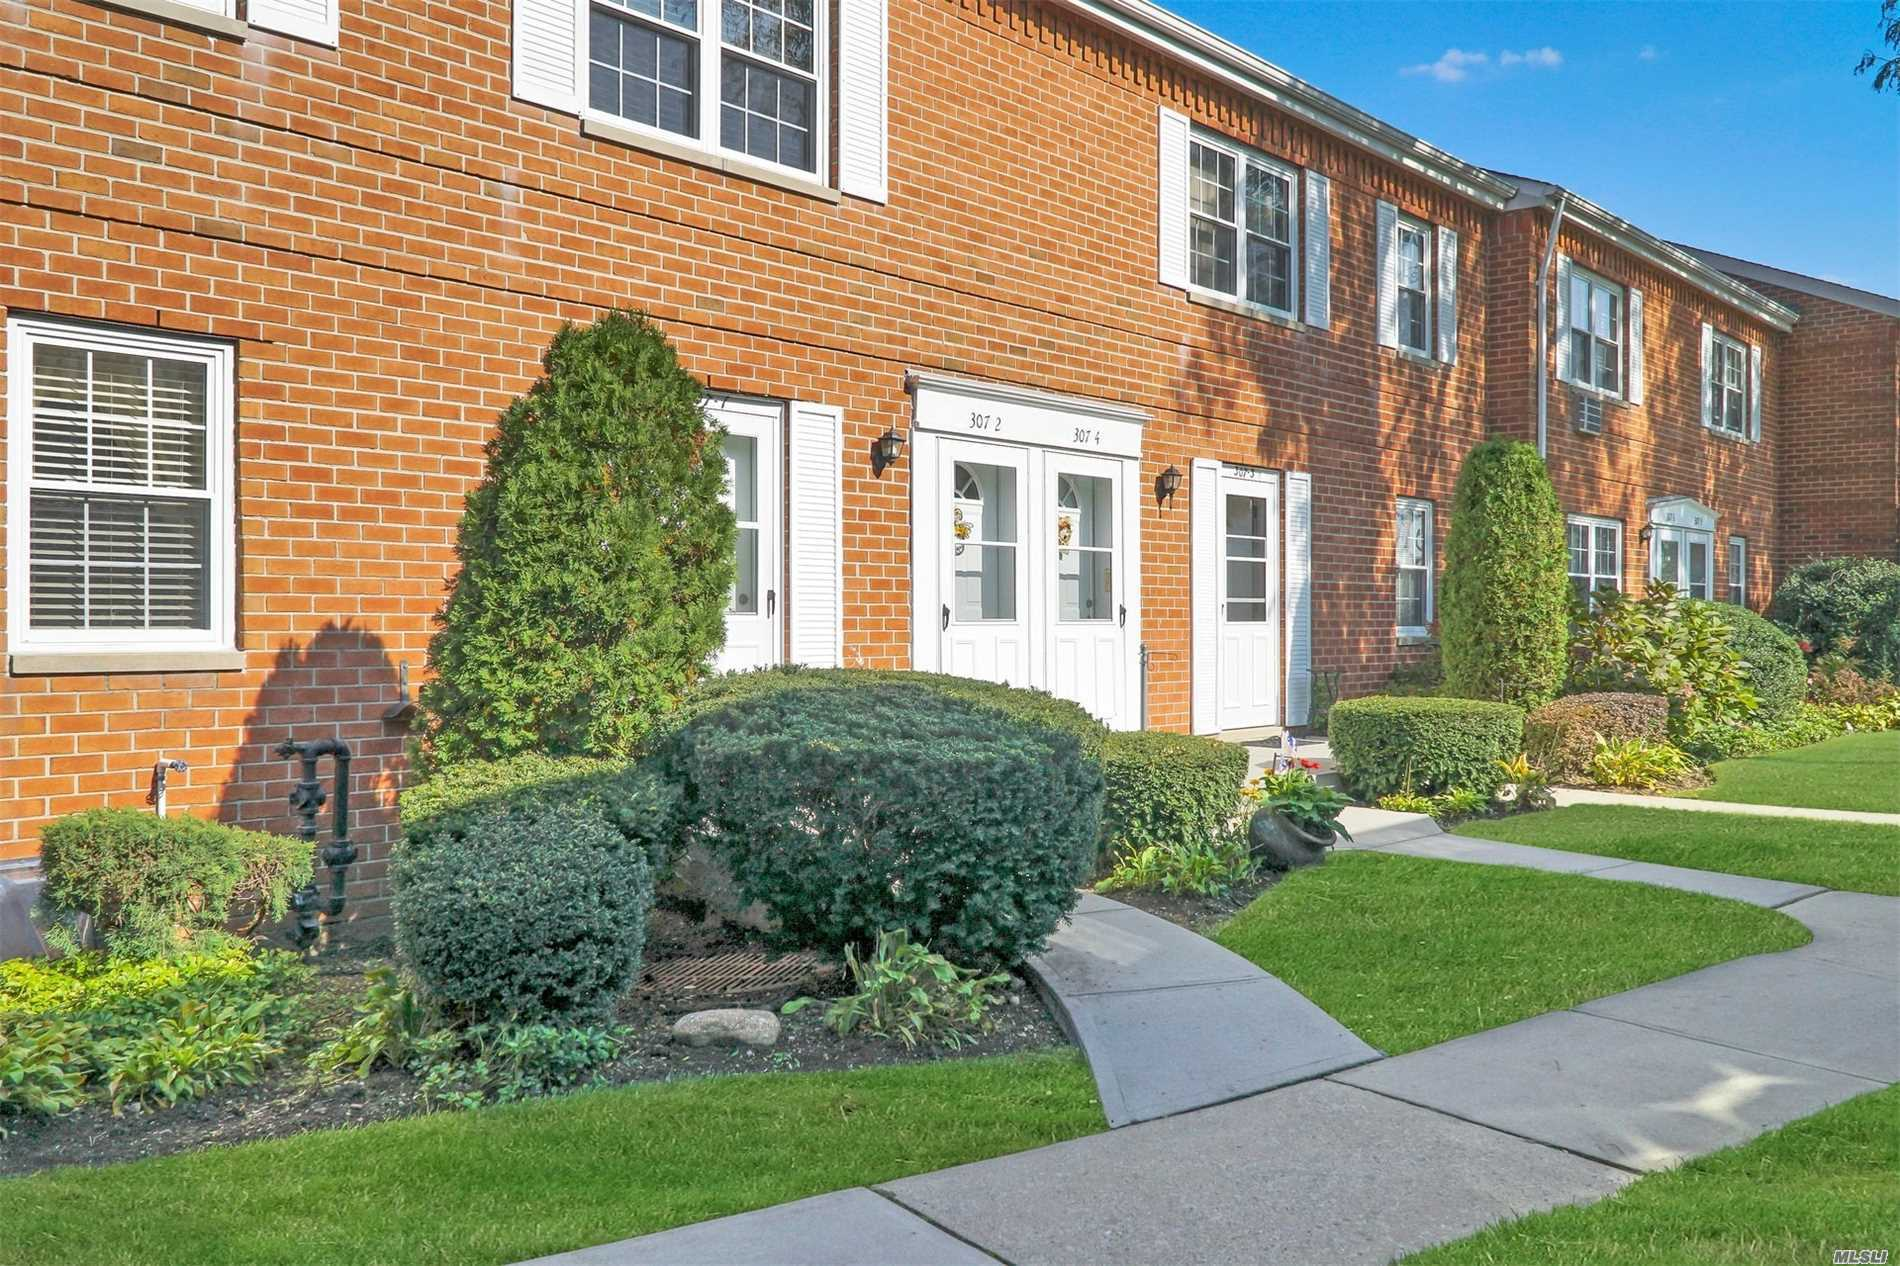 307 Hicksville Rd, 6 - Bethpage, New York